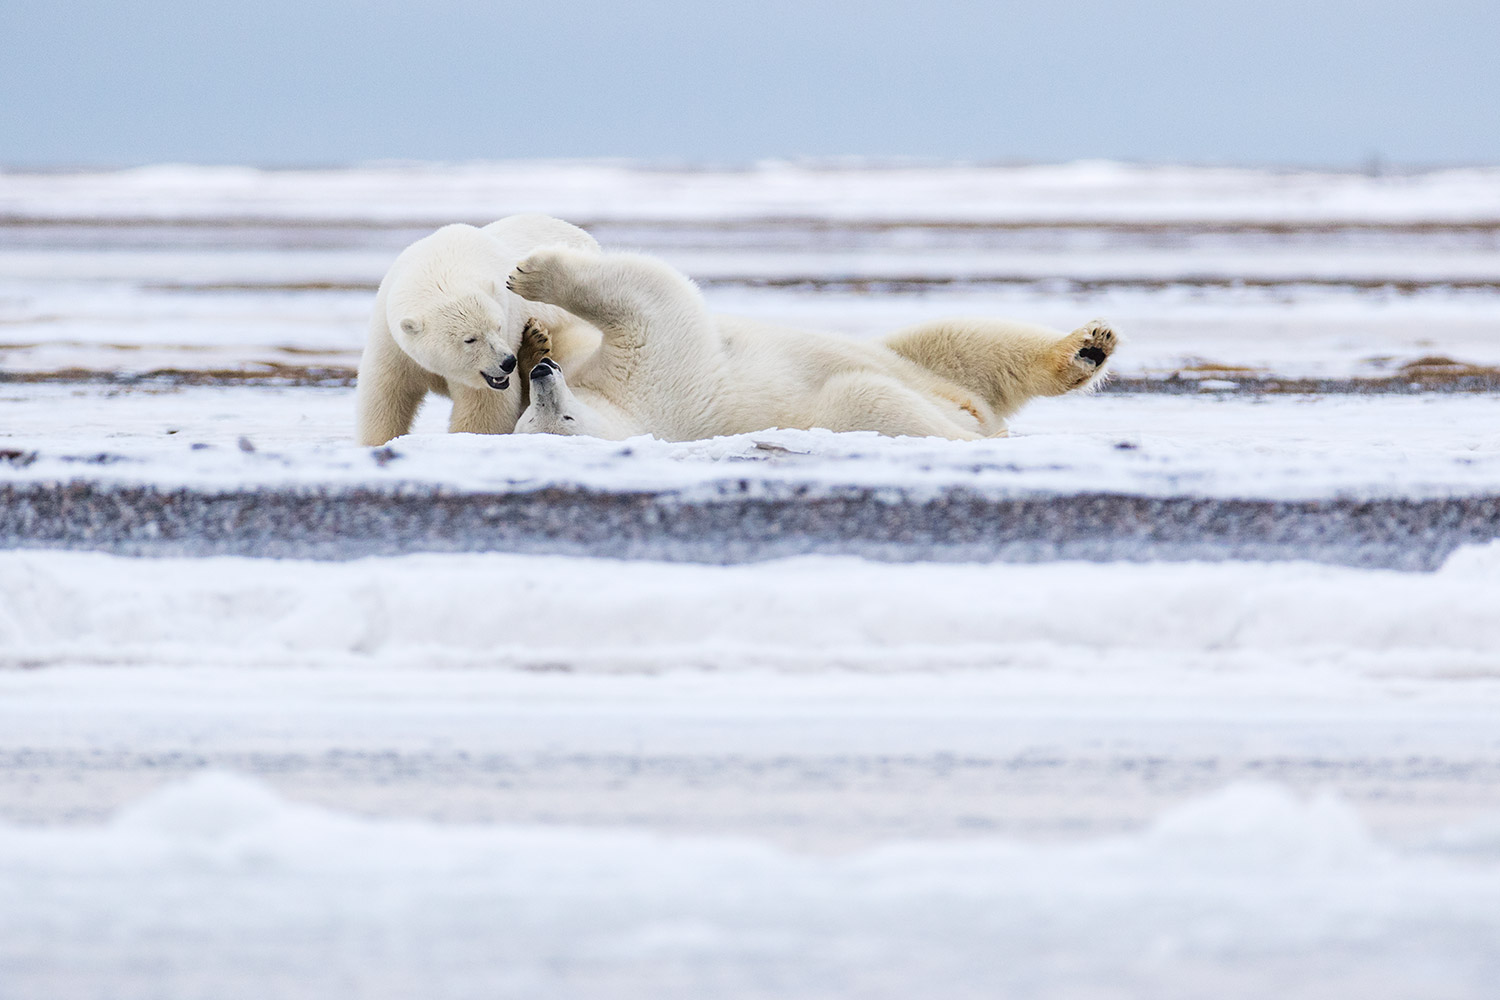 Polar-bear-sow-and-cub-play-wrestling,-Arctic-National-Wildlife-Refuge,-Alaska,-USA